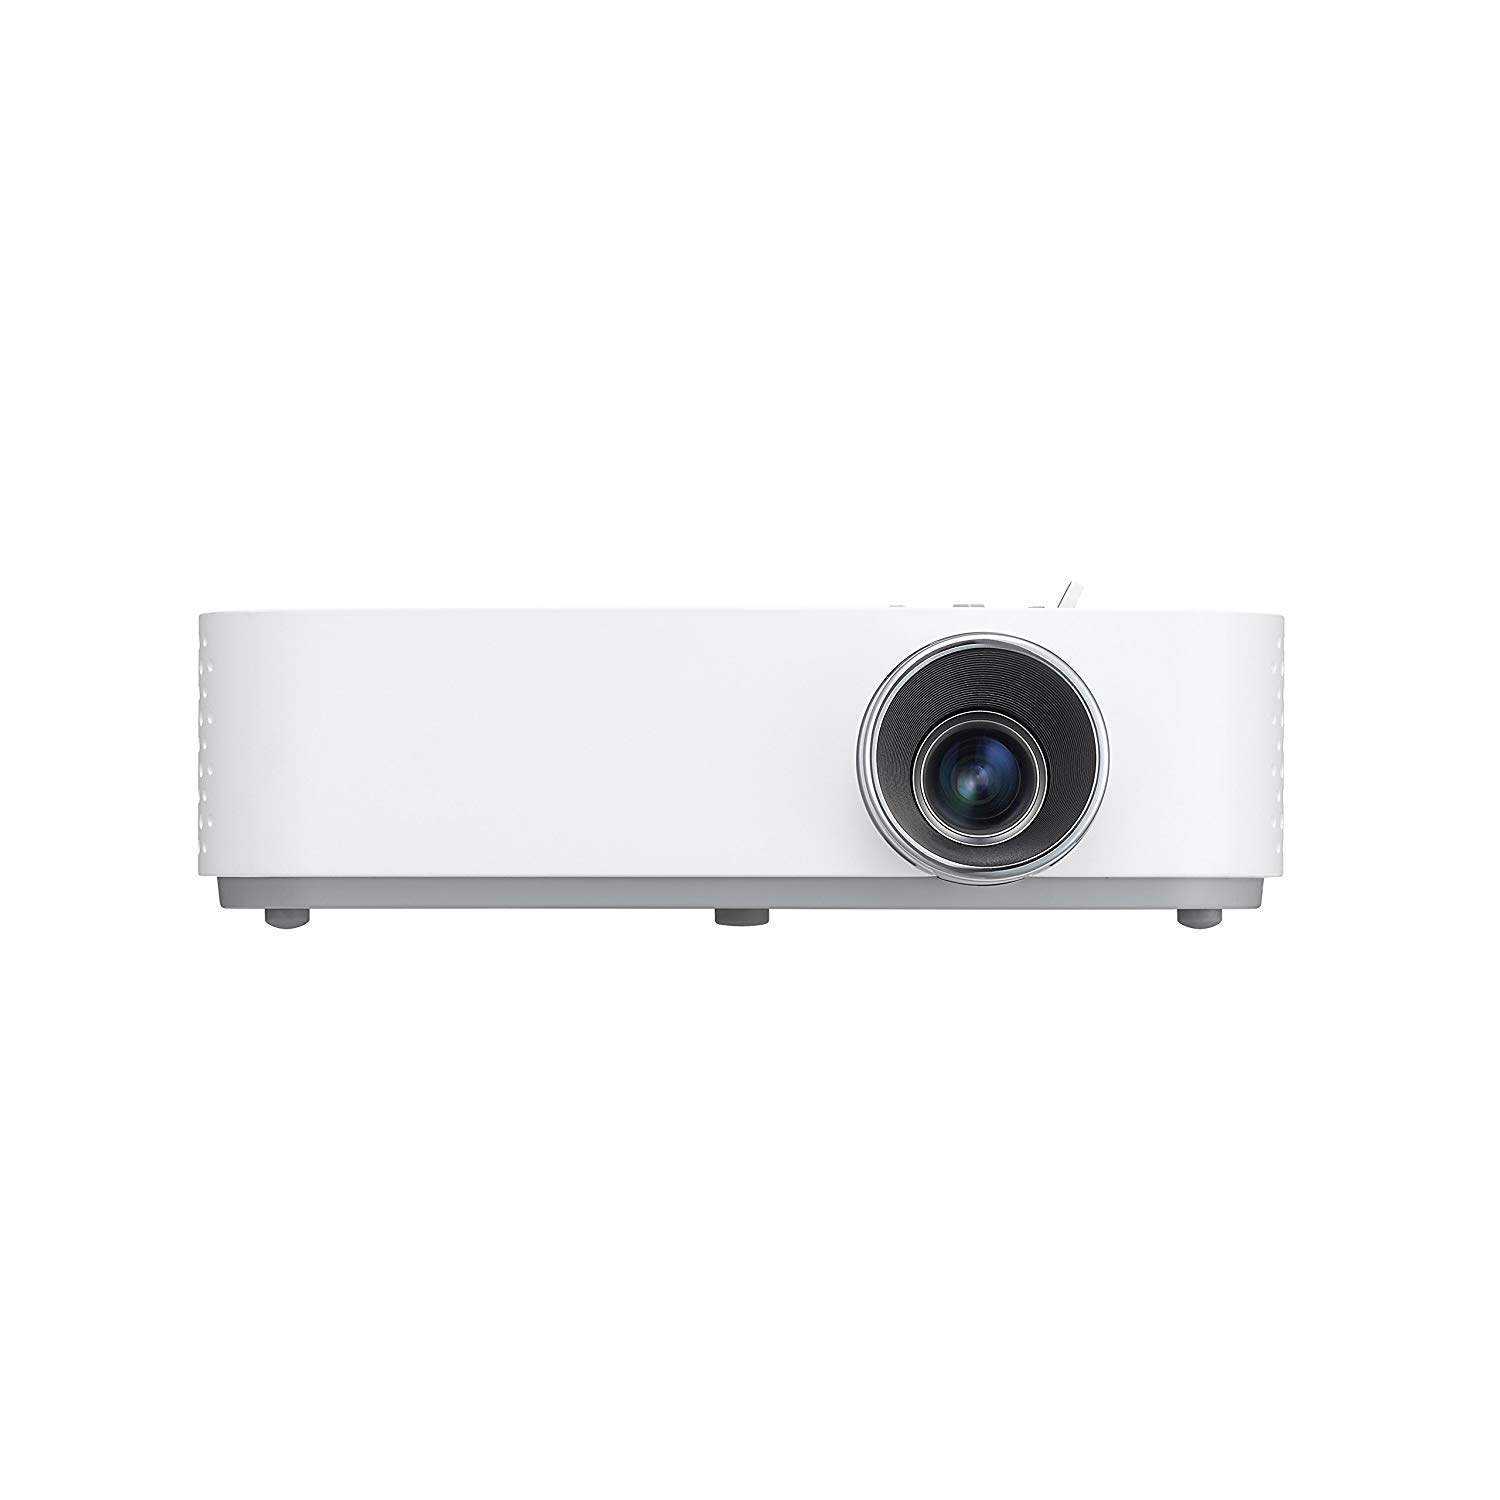 LG Portable Projector Certified Refurbished